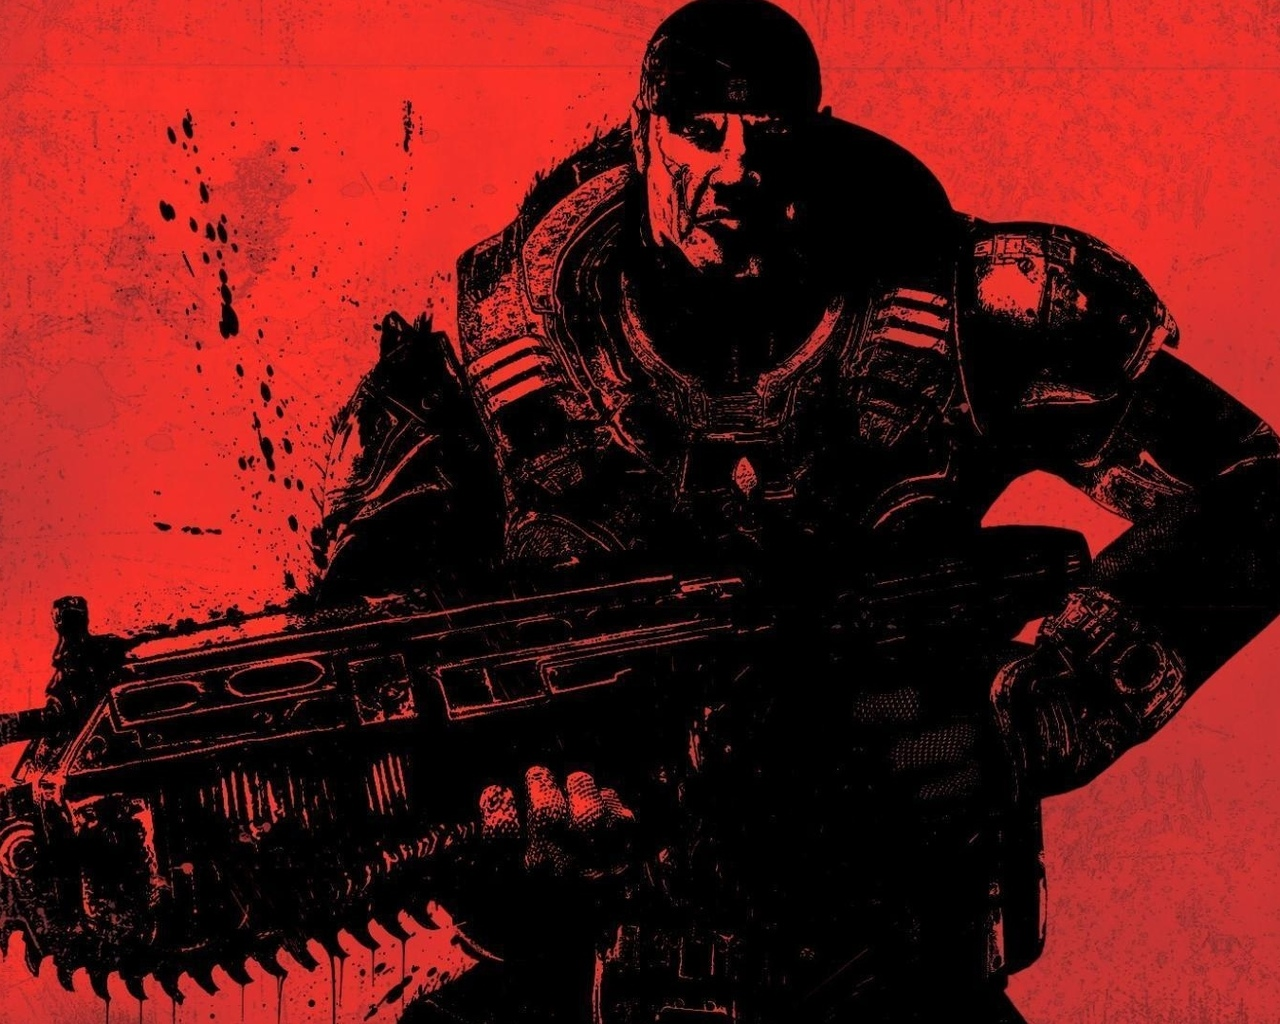 оружие, gears of war 3, microsoft game studios, броня, шутер от третьего лица